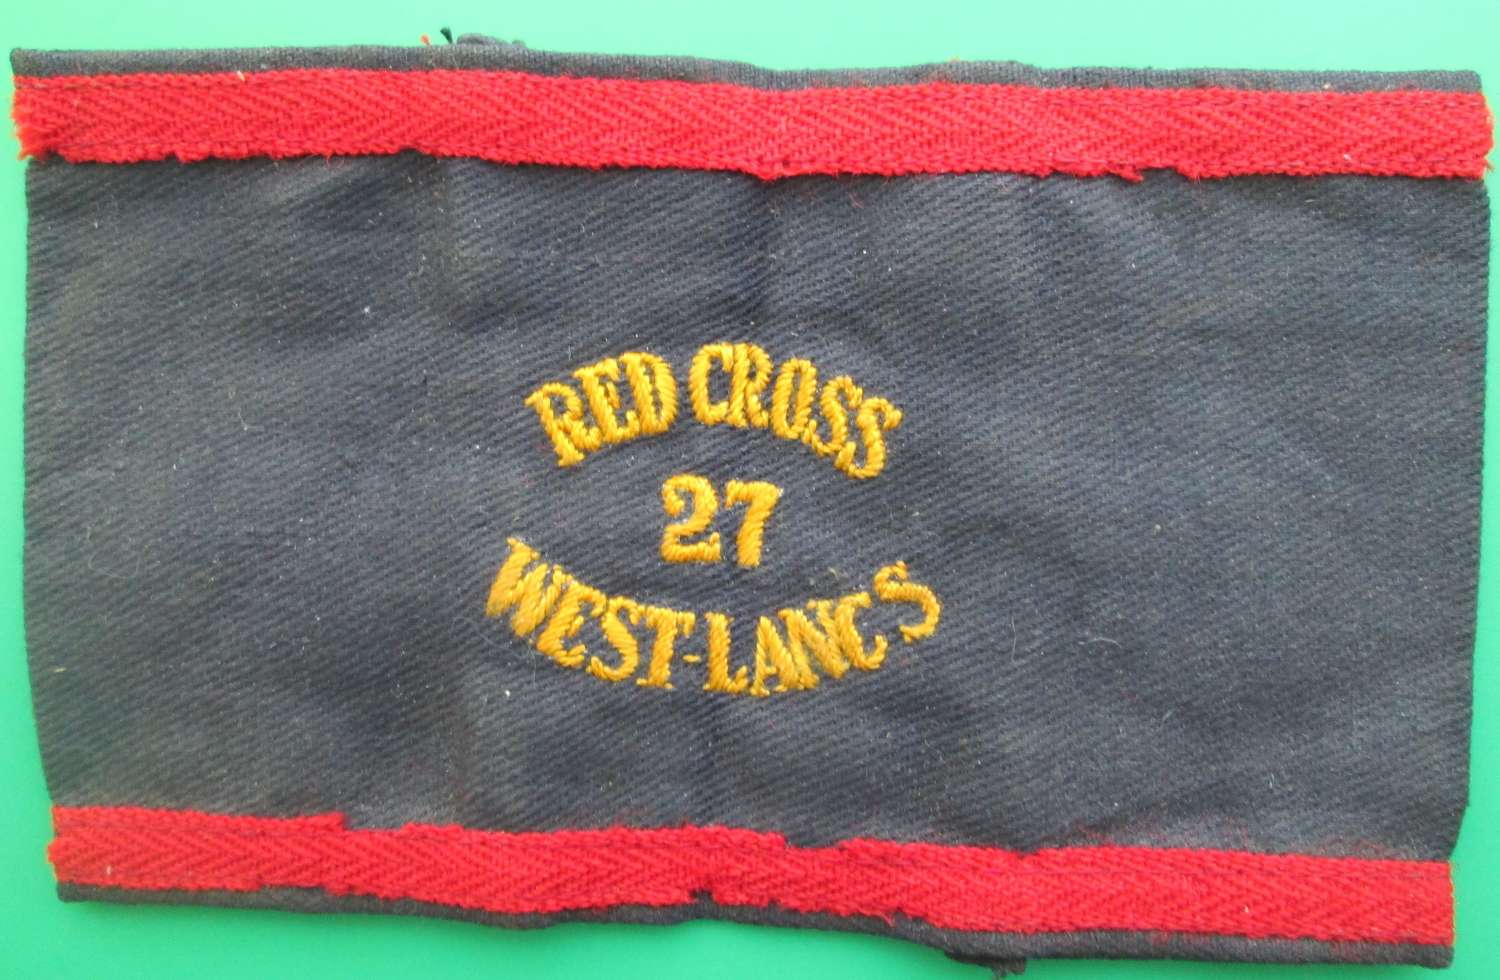 A RED CROSS ARM BAND FOR THE 27 WEST LANCS